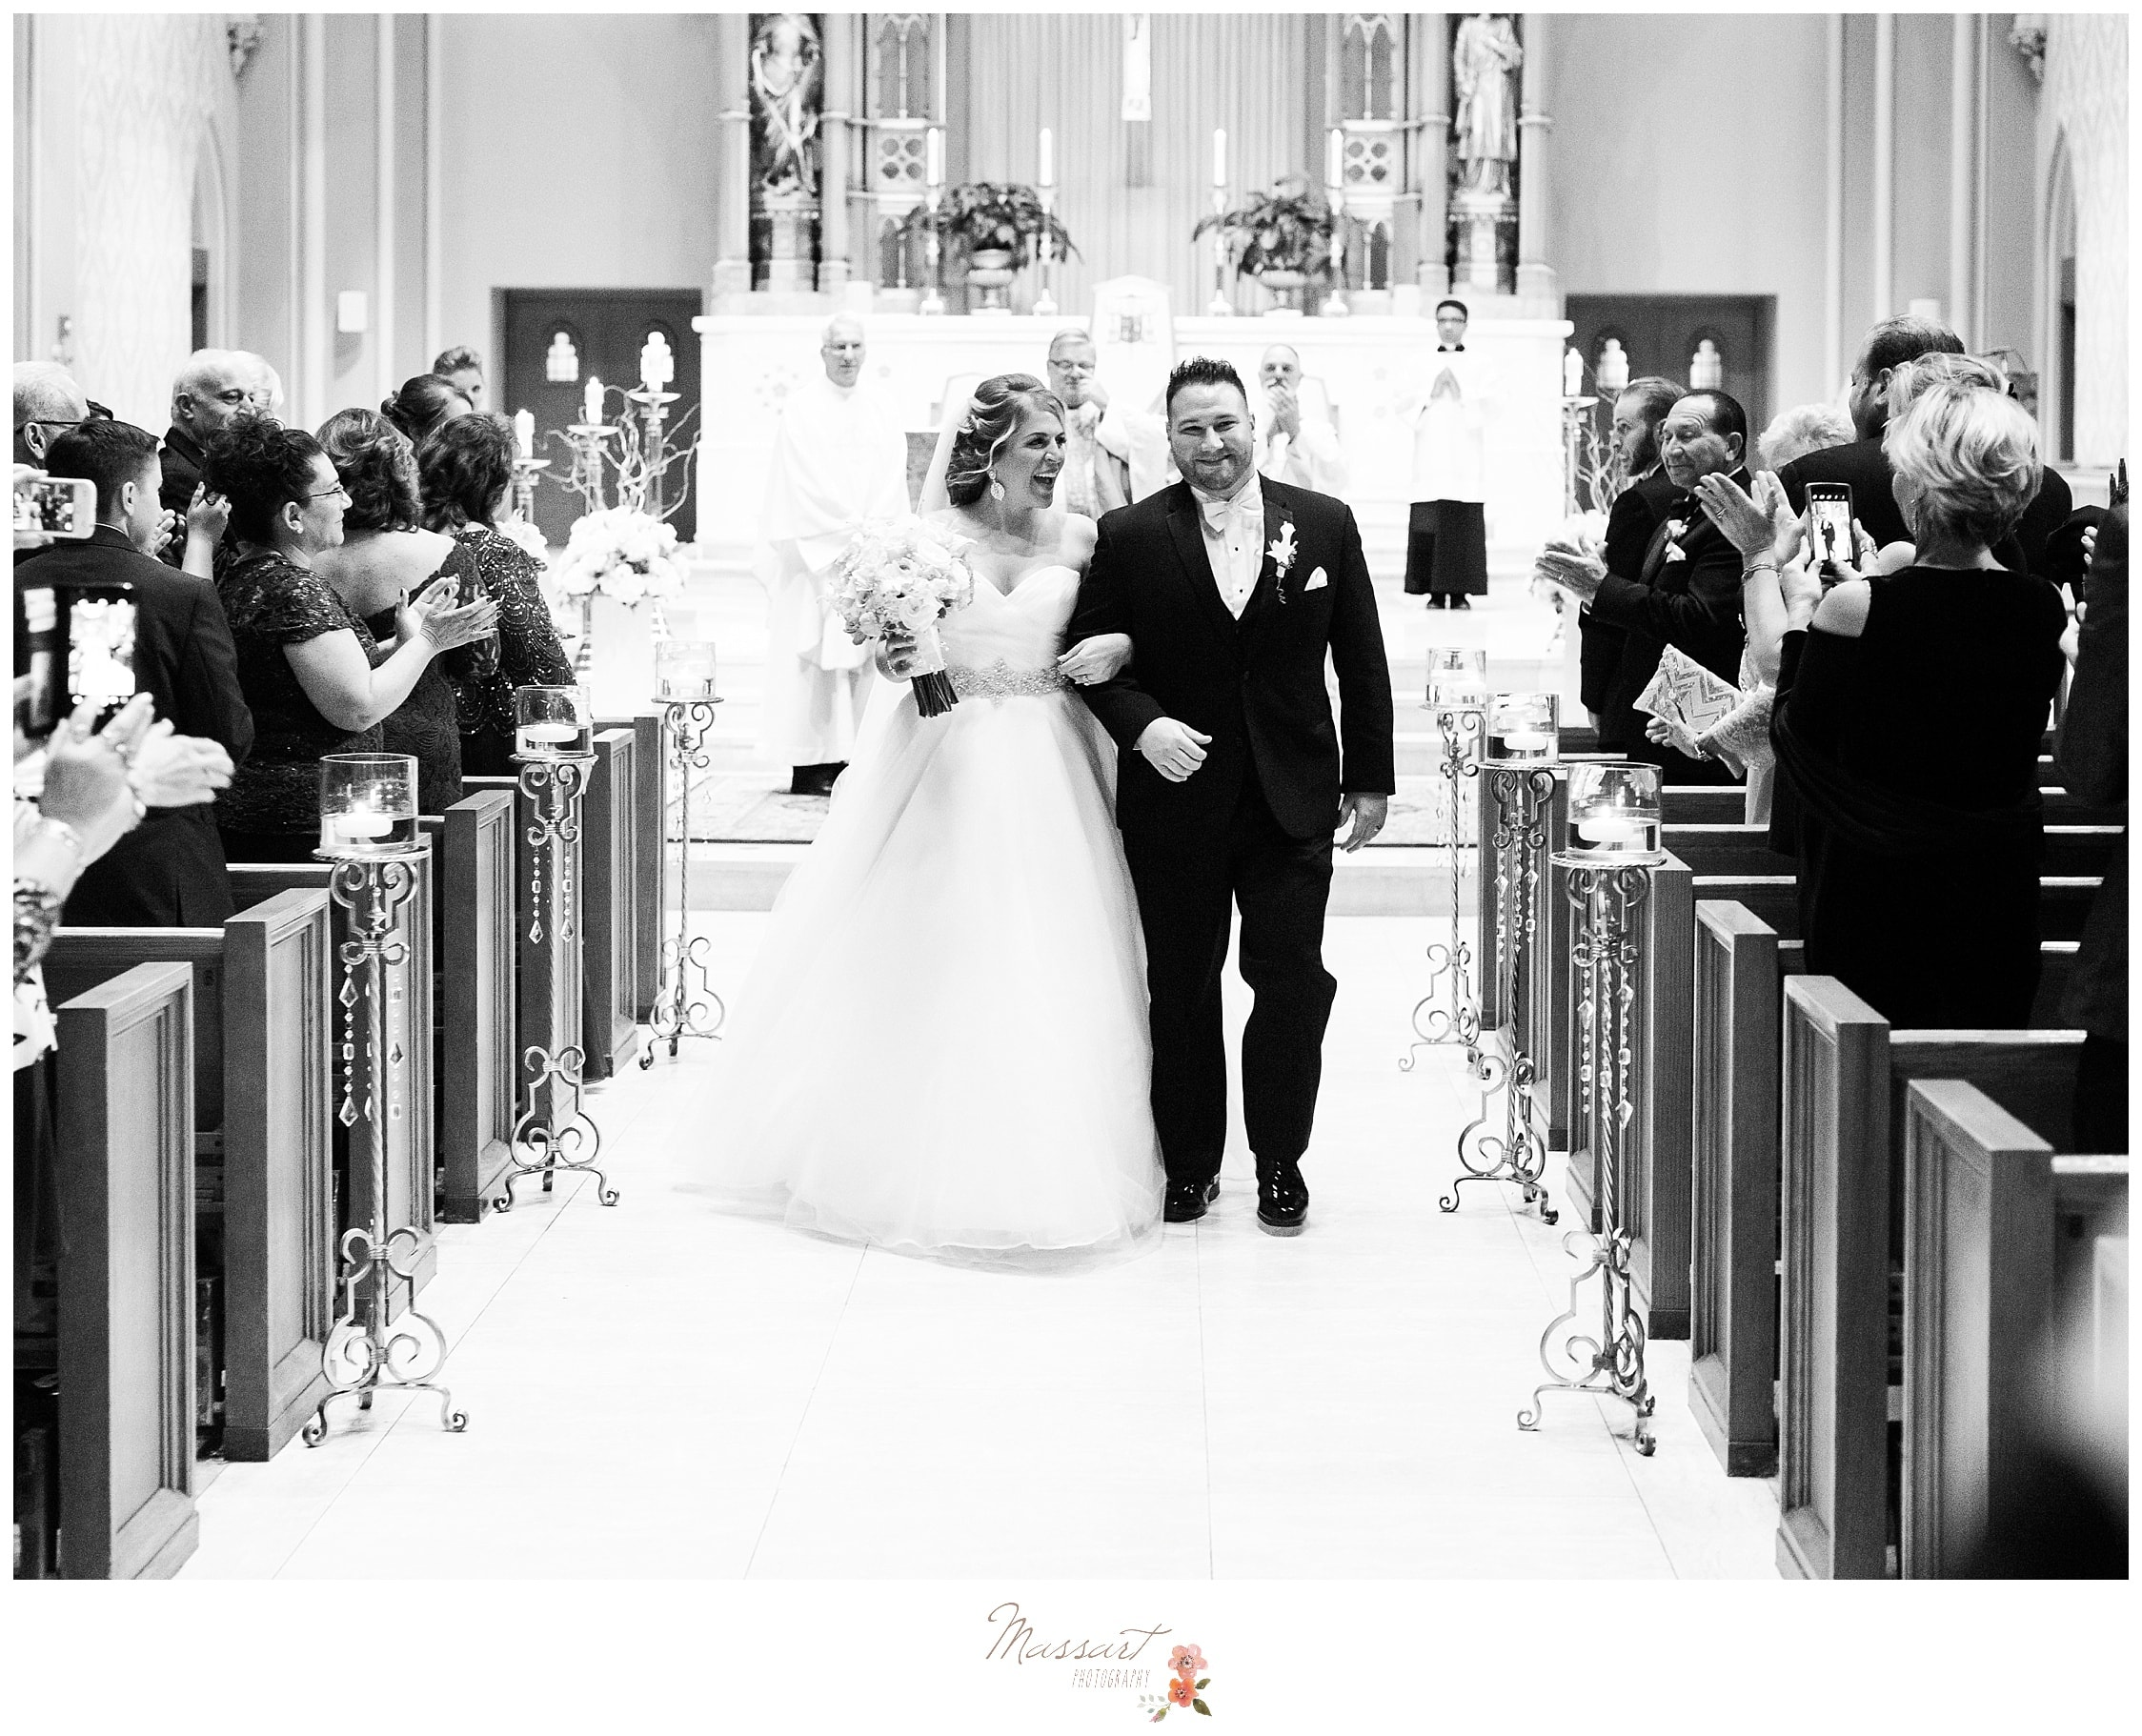 Husband and wife walk down the aisle during the wedding ceremony photographed by Massart Photography RI